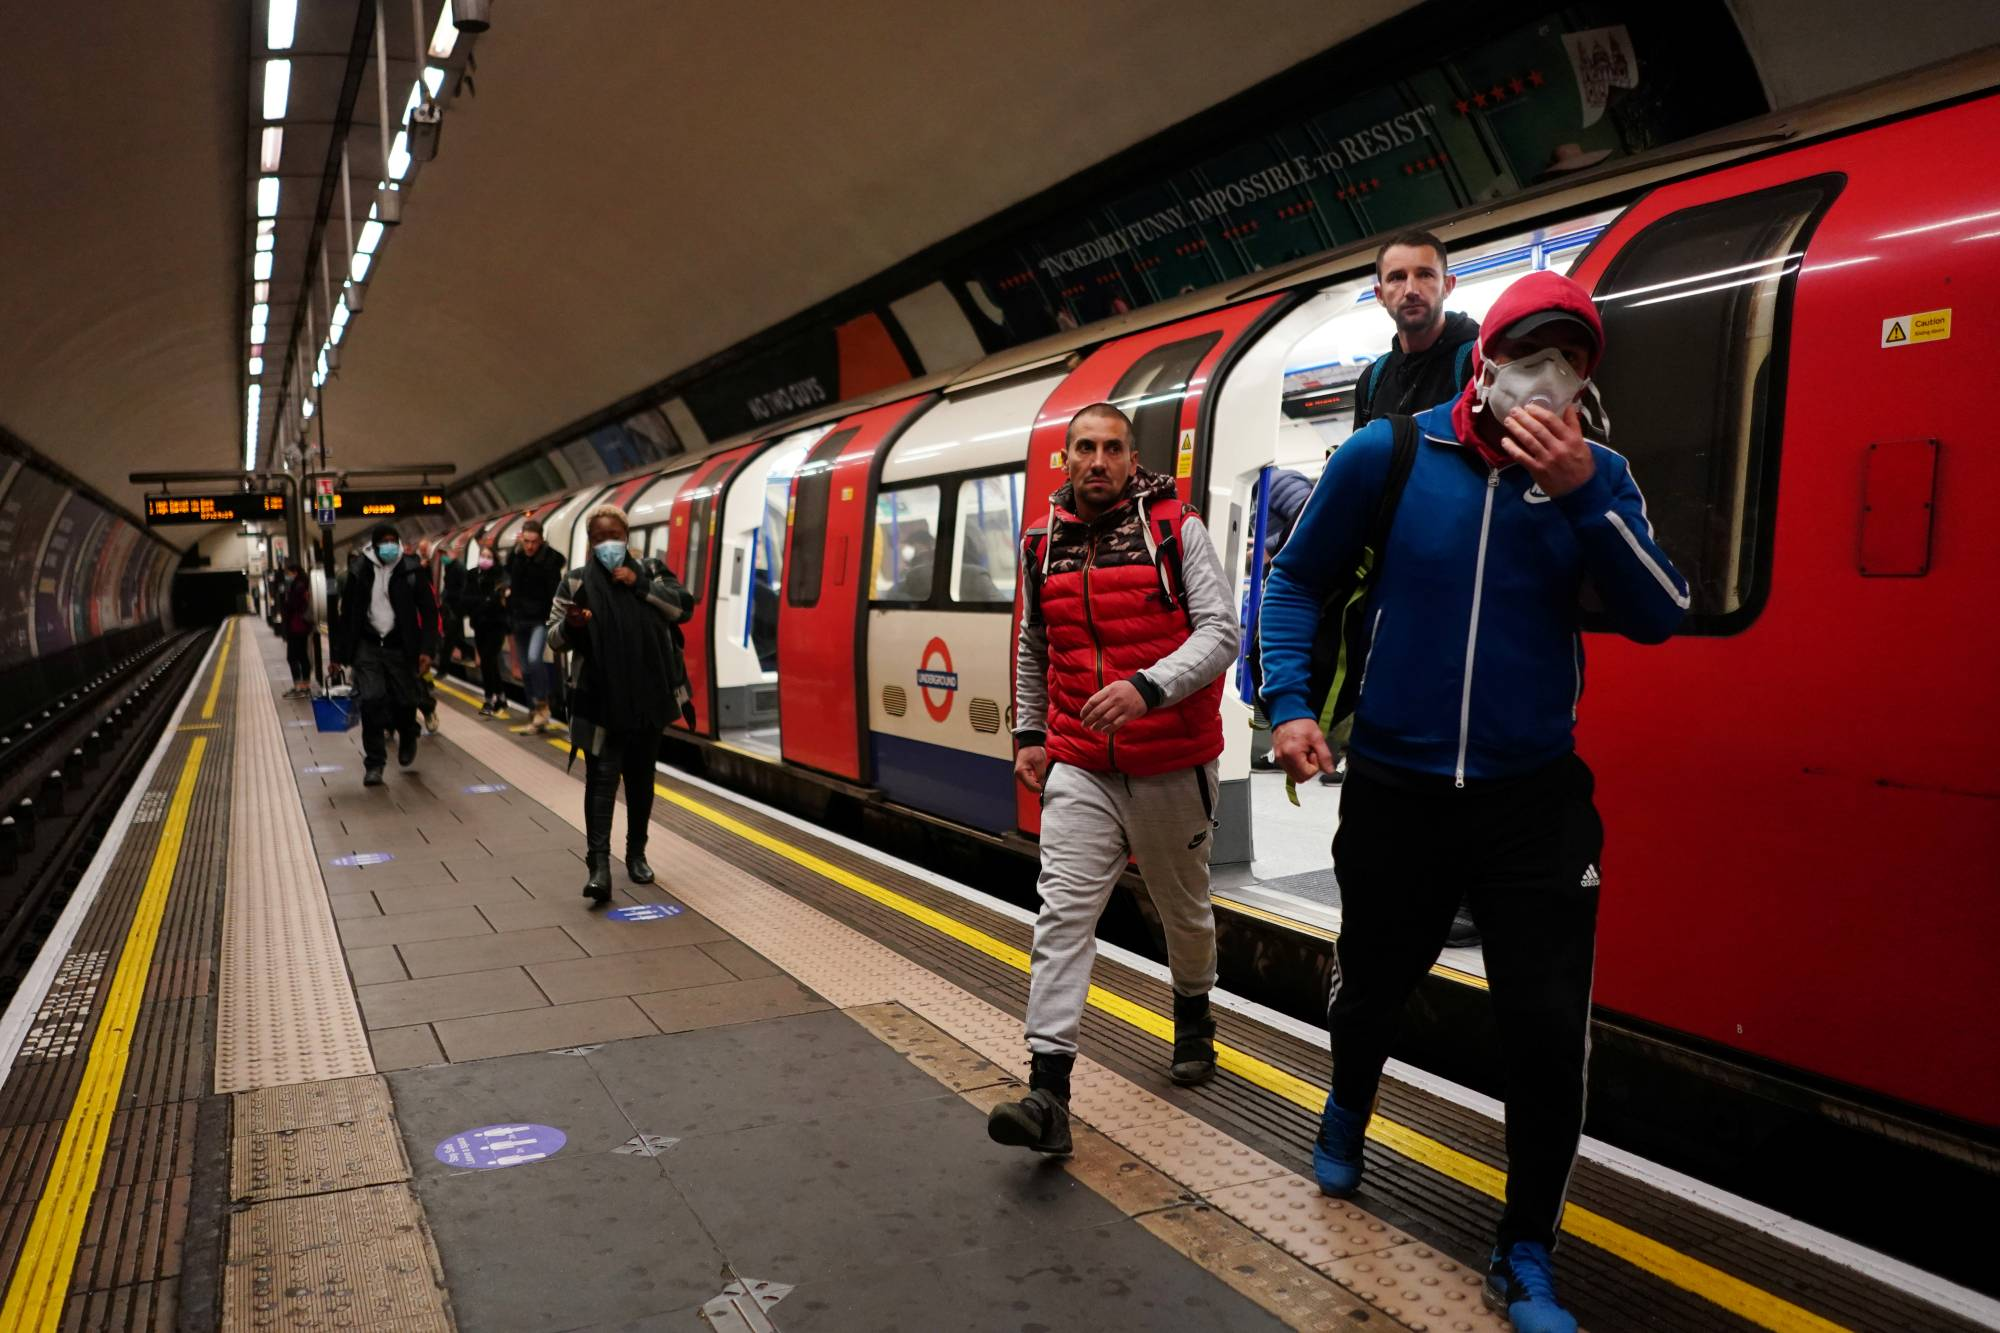 People step off a train at a subway station in London on Thursday. | REUTERS